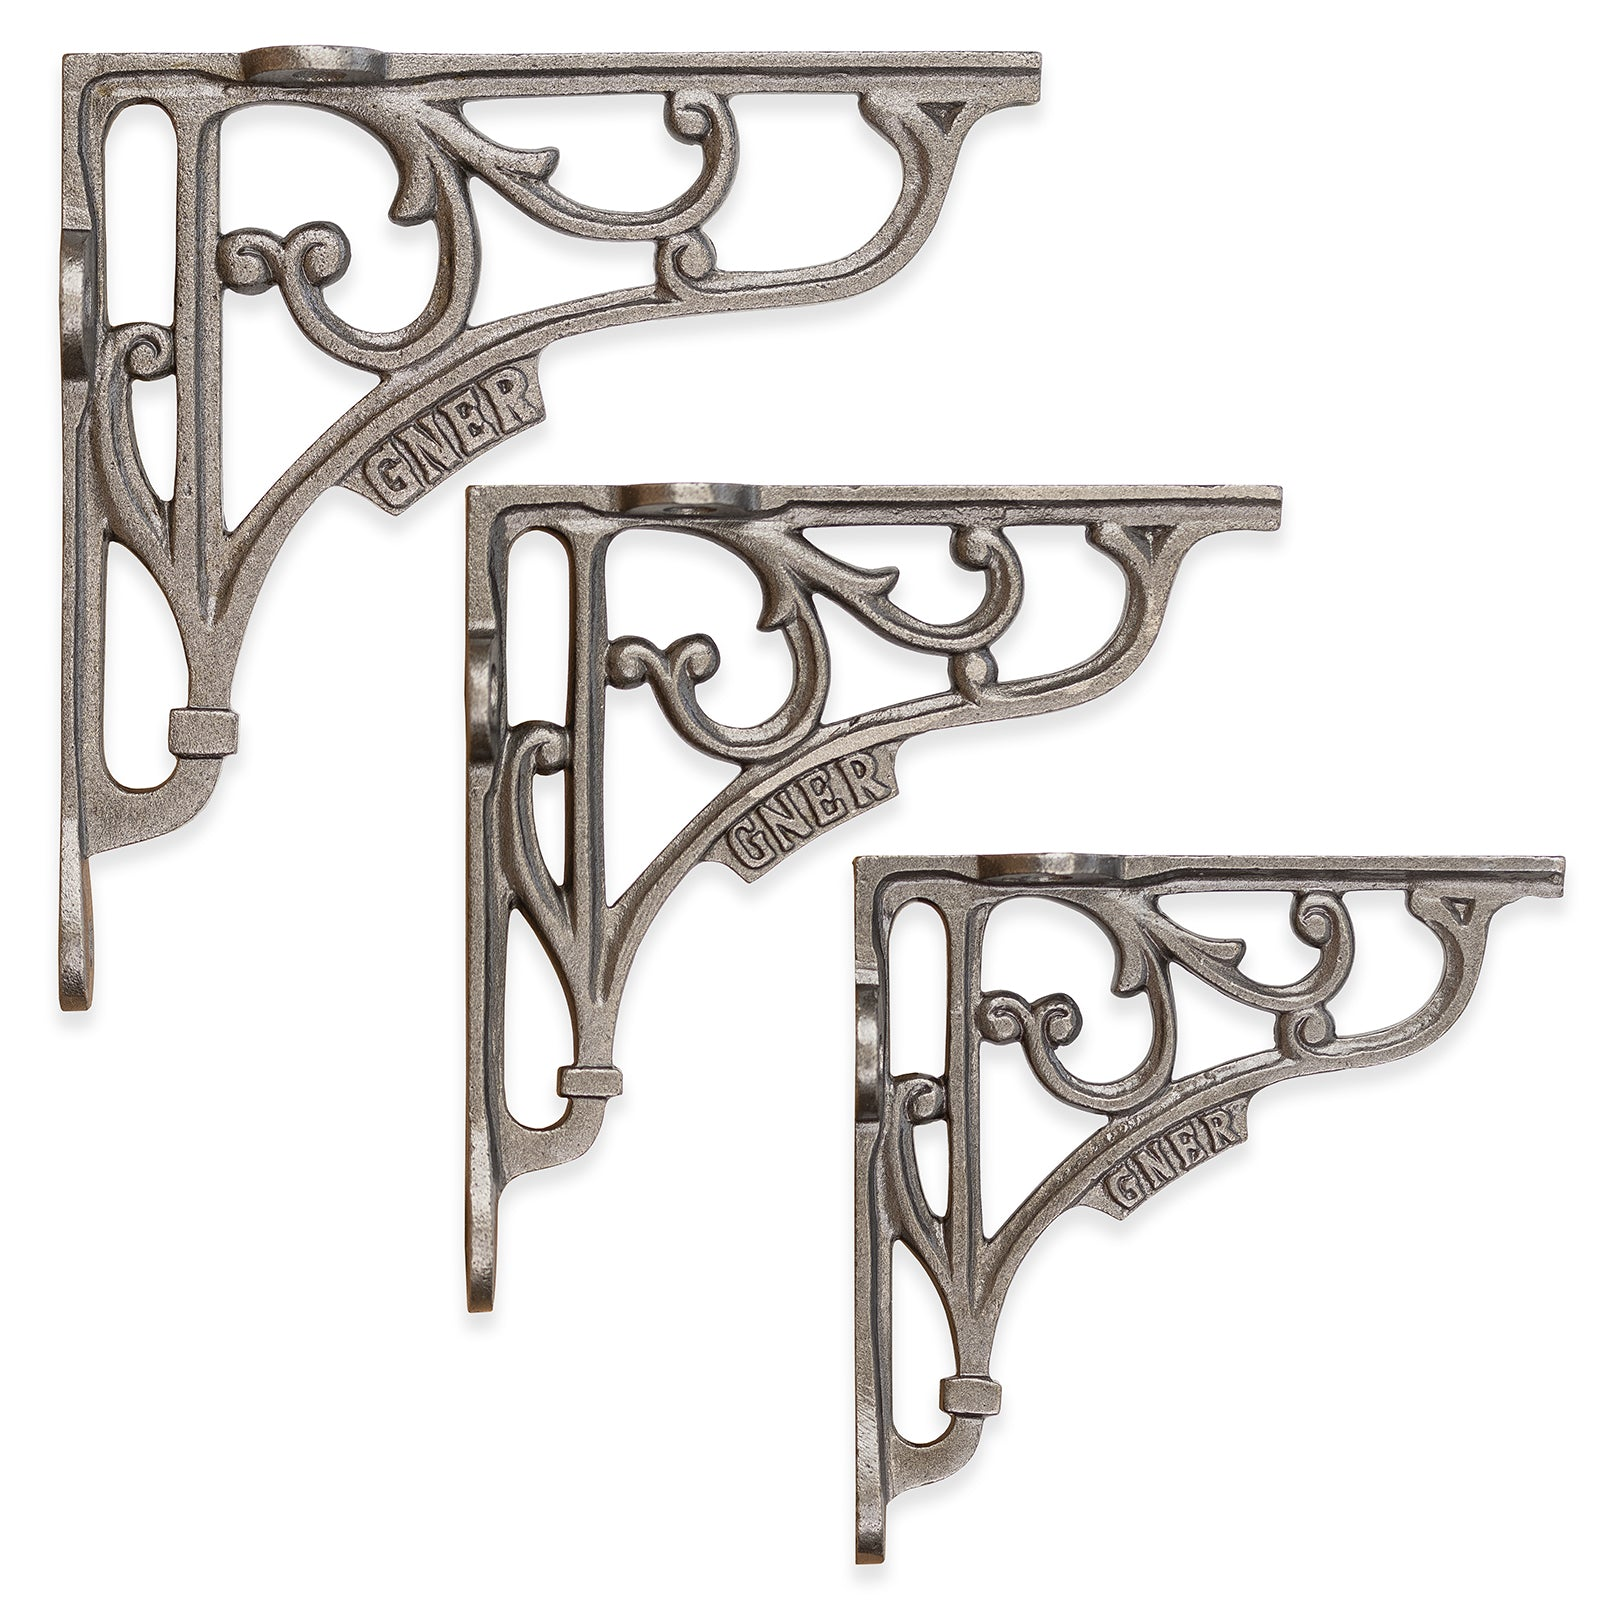 Cast Iron Shelf Brackets With GNER Logo 5, 6 & 7 Inch